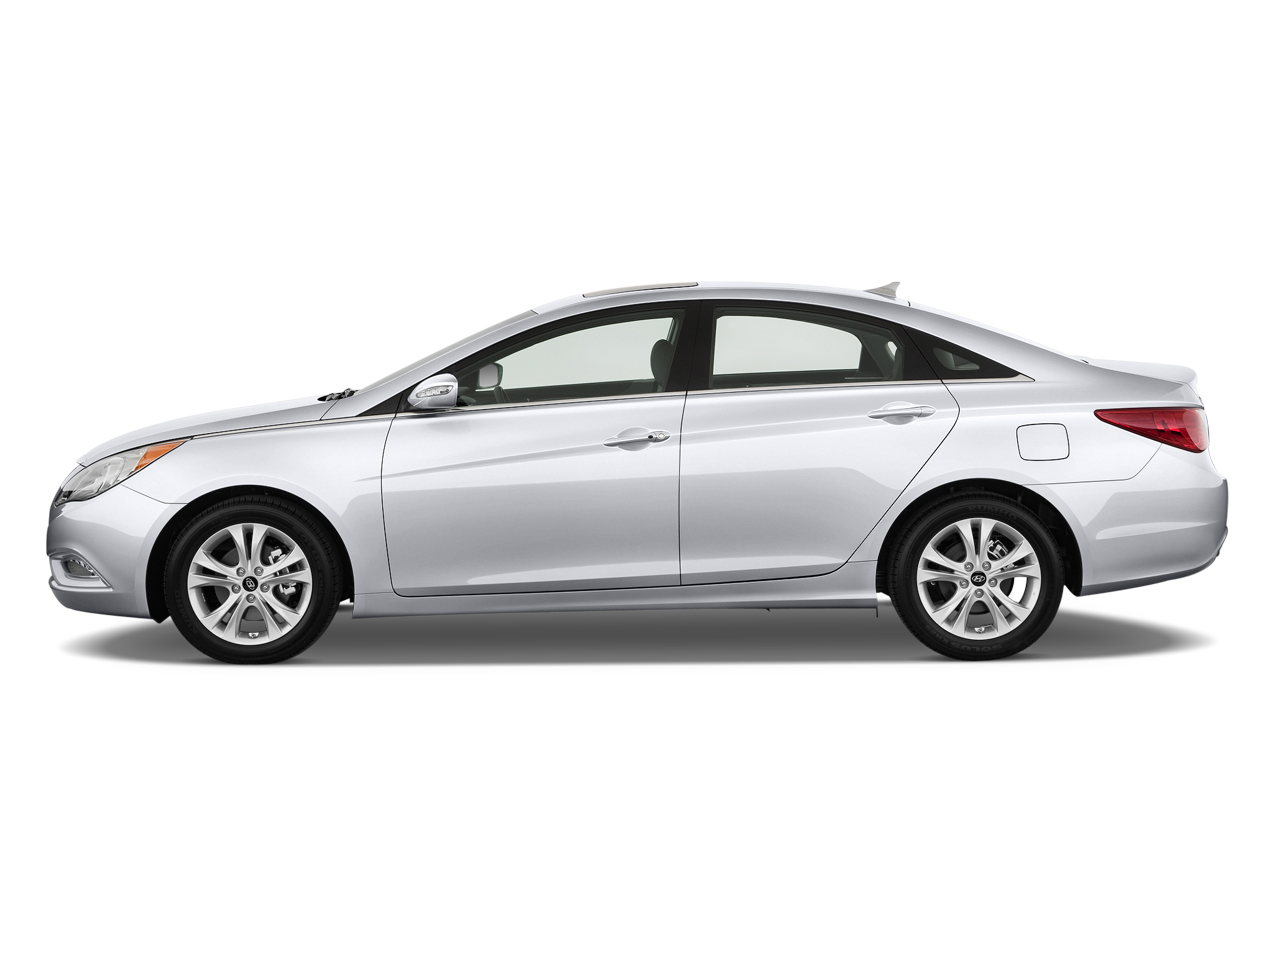 2012 Hyundai Sonata Review Ratings Specs Prices And Photos The Car Connection